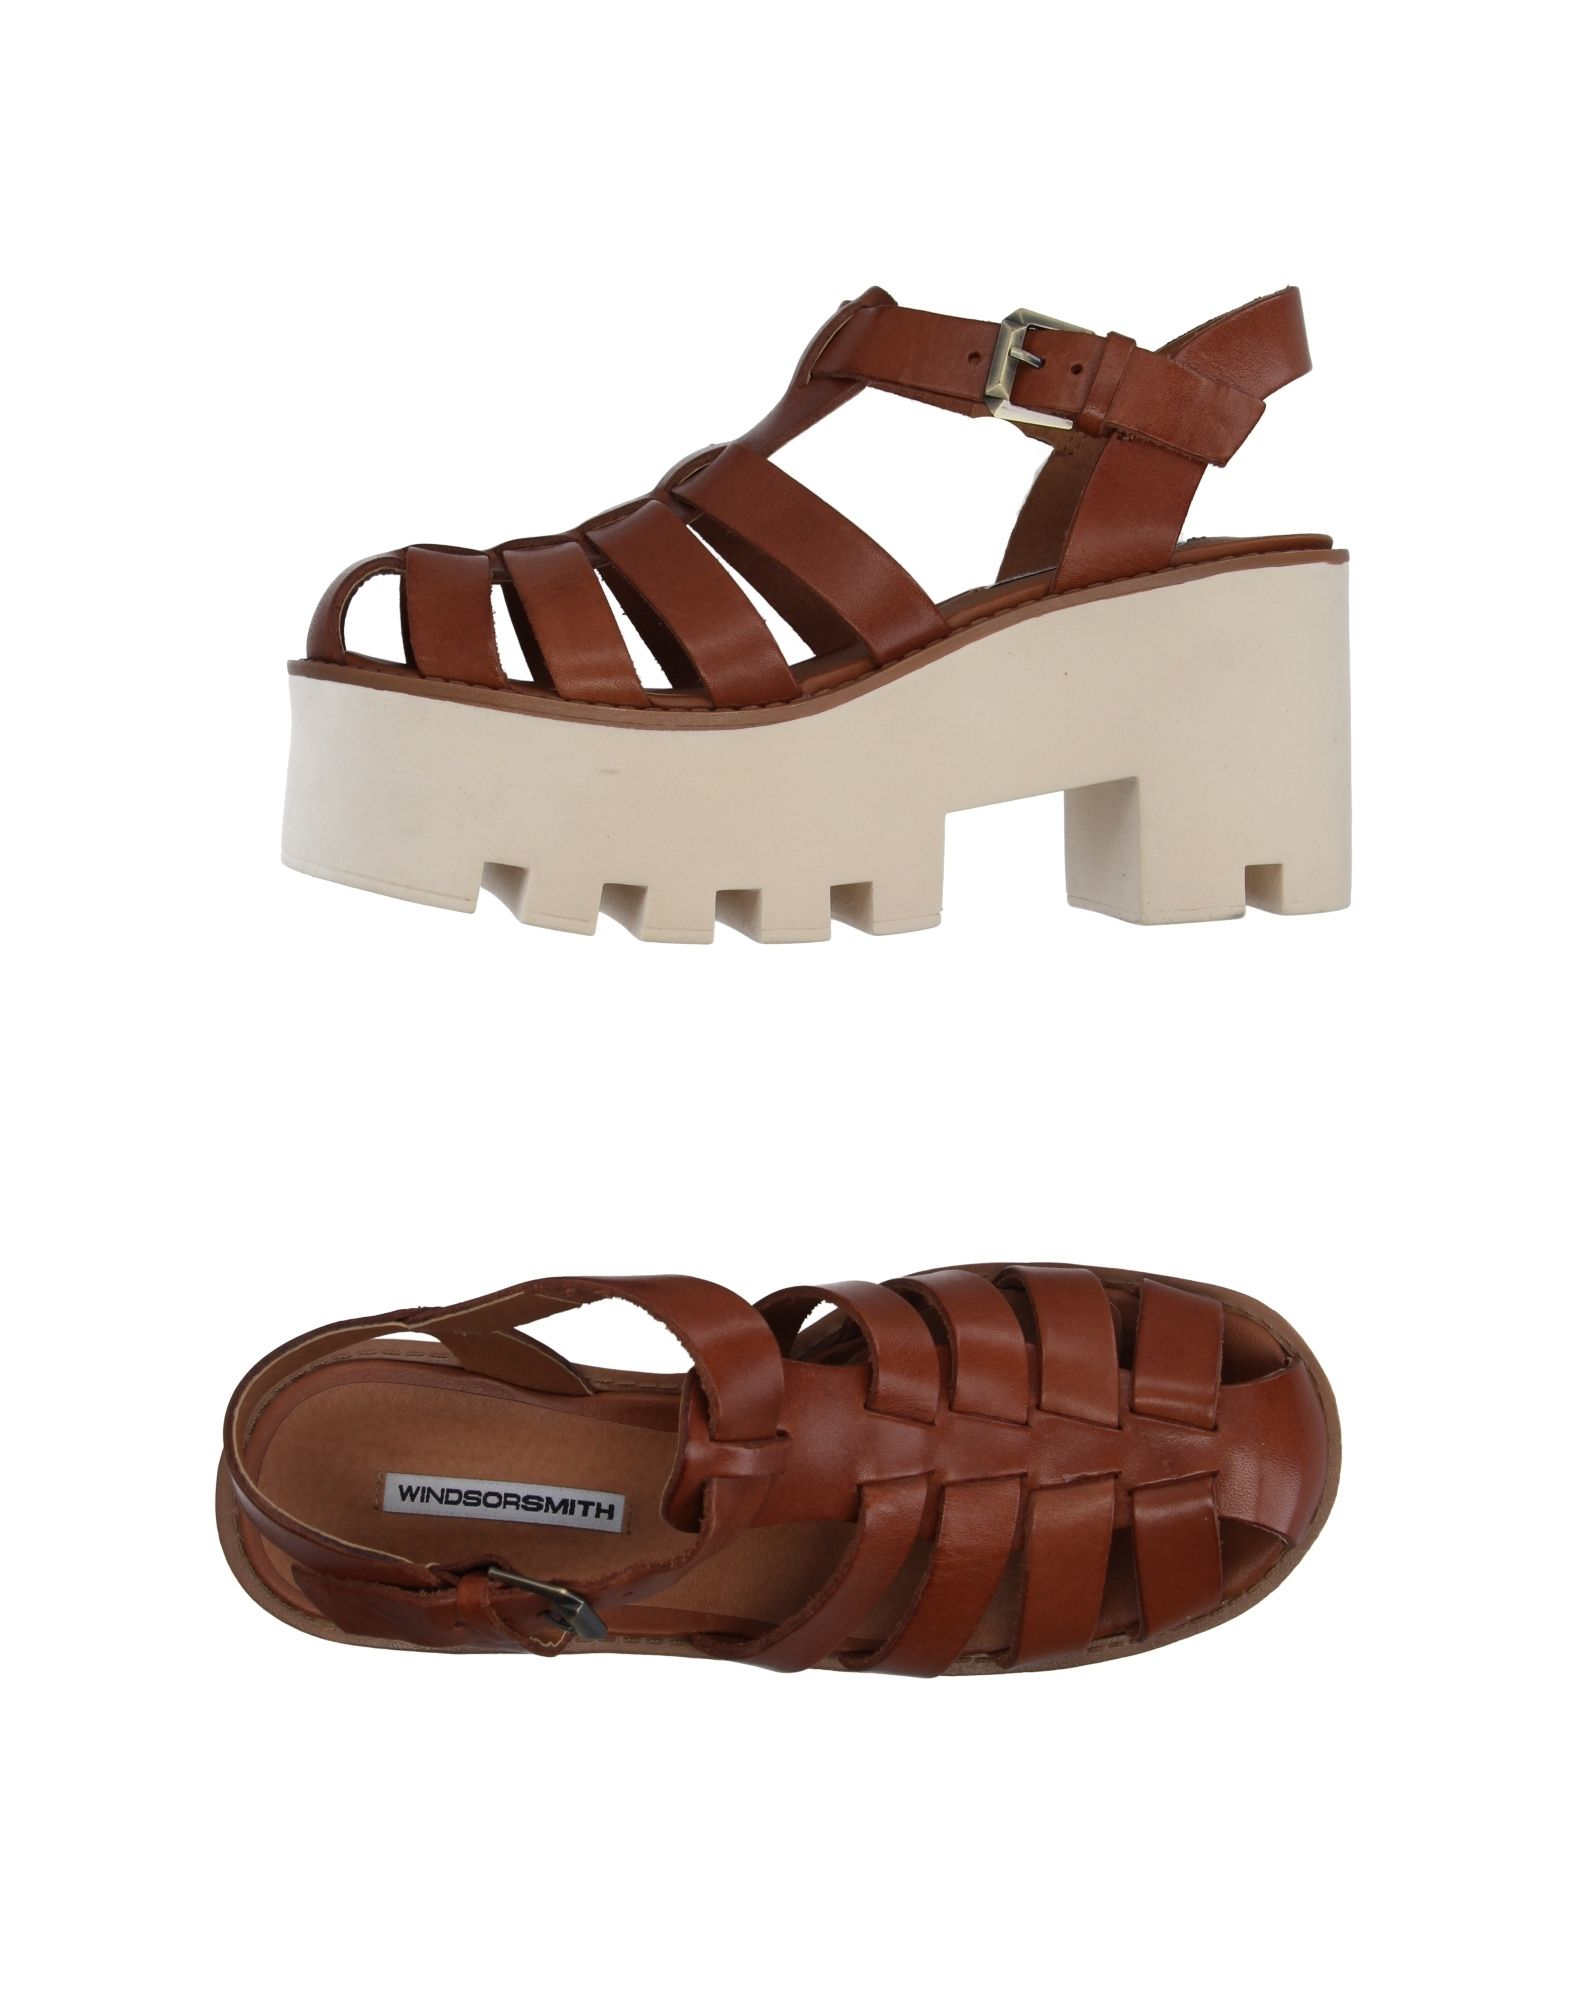 Sandales Windsor Smith Femme - Sandales Windsor Smith sur